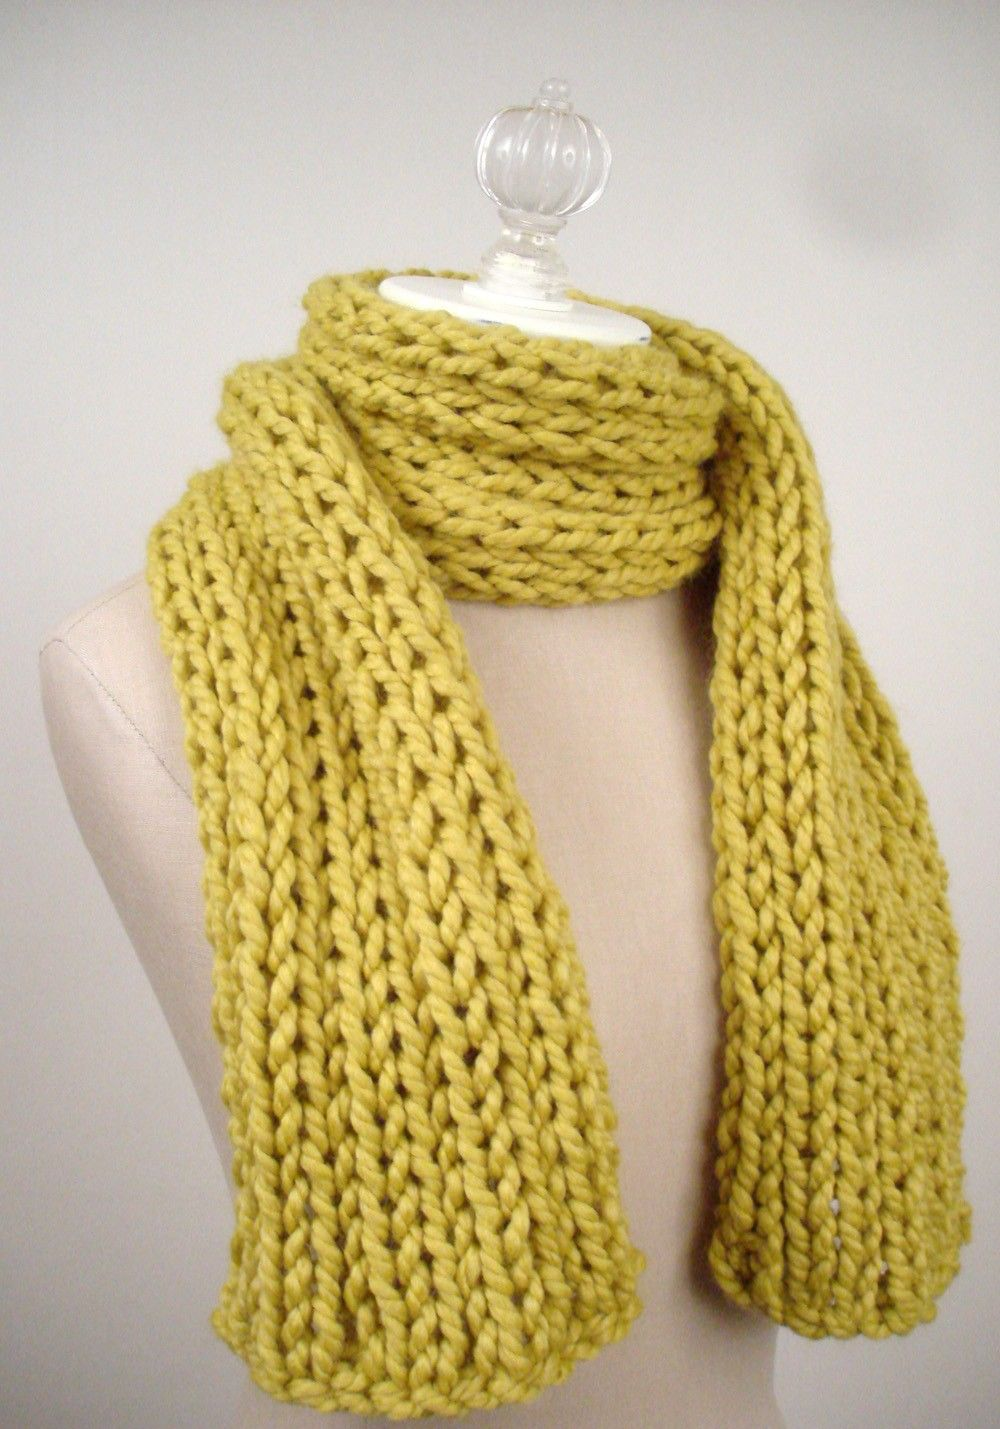 Knitting Patterns Scarf Size 19 Needles : Free knitting pattern ~Phydeaux Designs One skein super bulky yarn (106 yards...